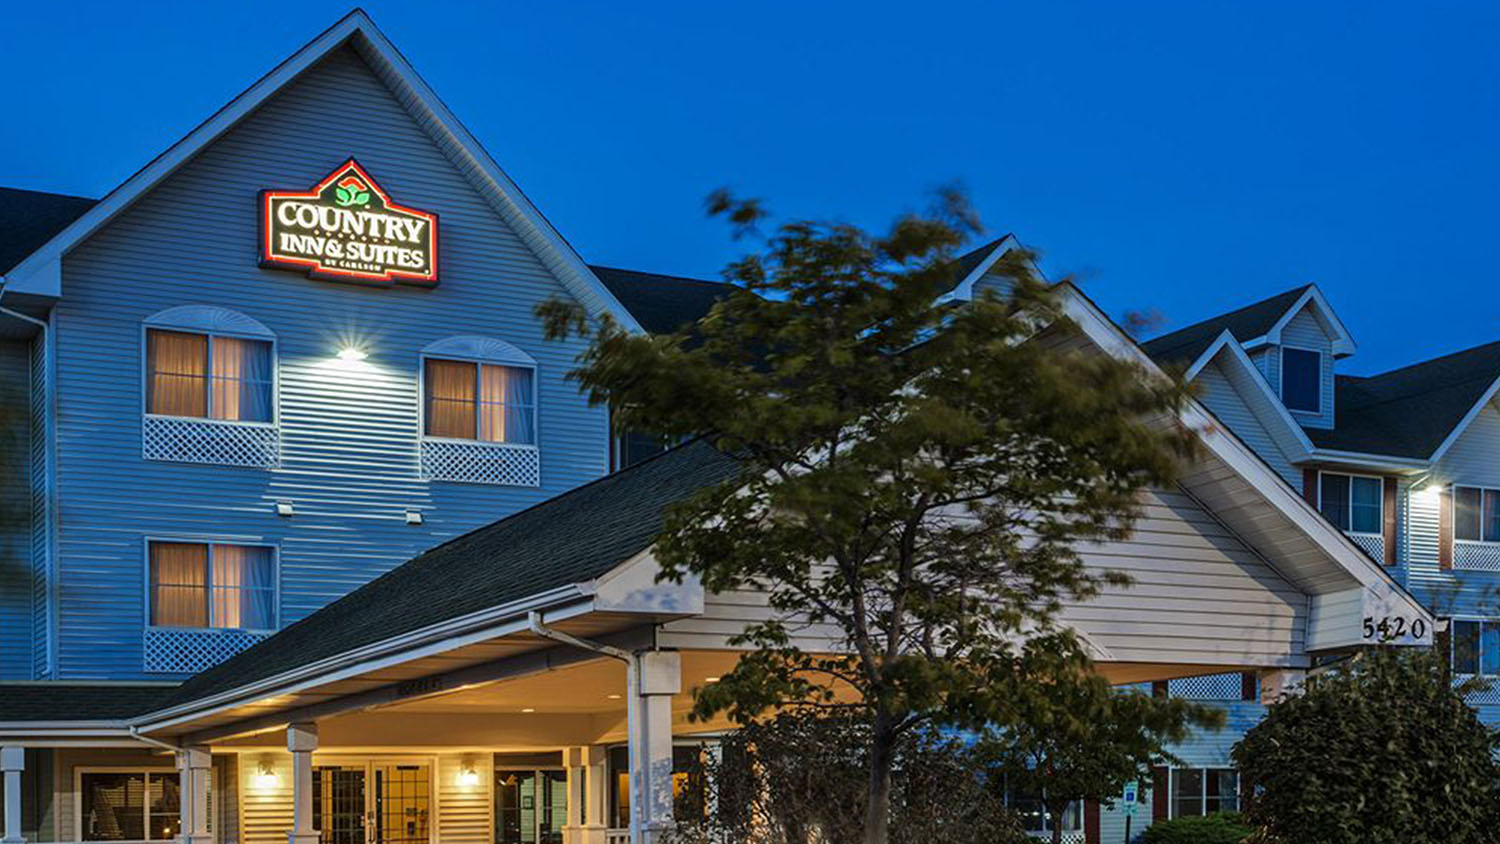 Country Inn & Suites - Gurnee